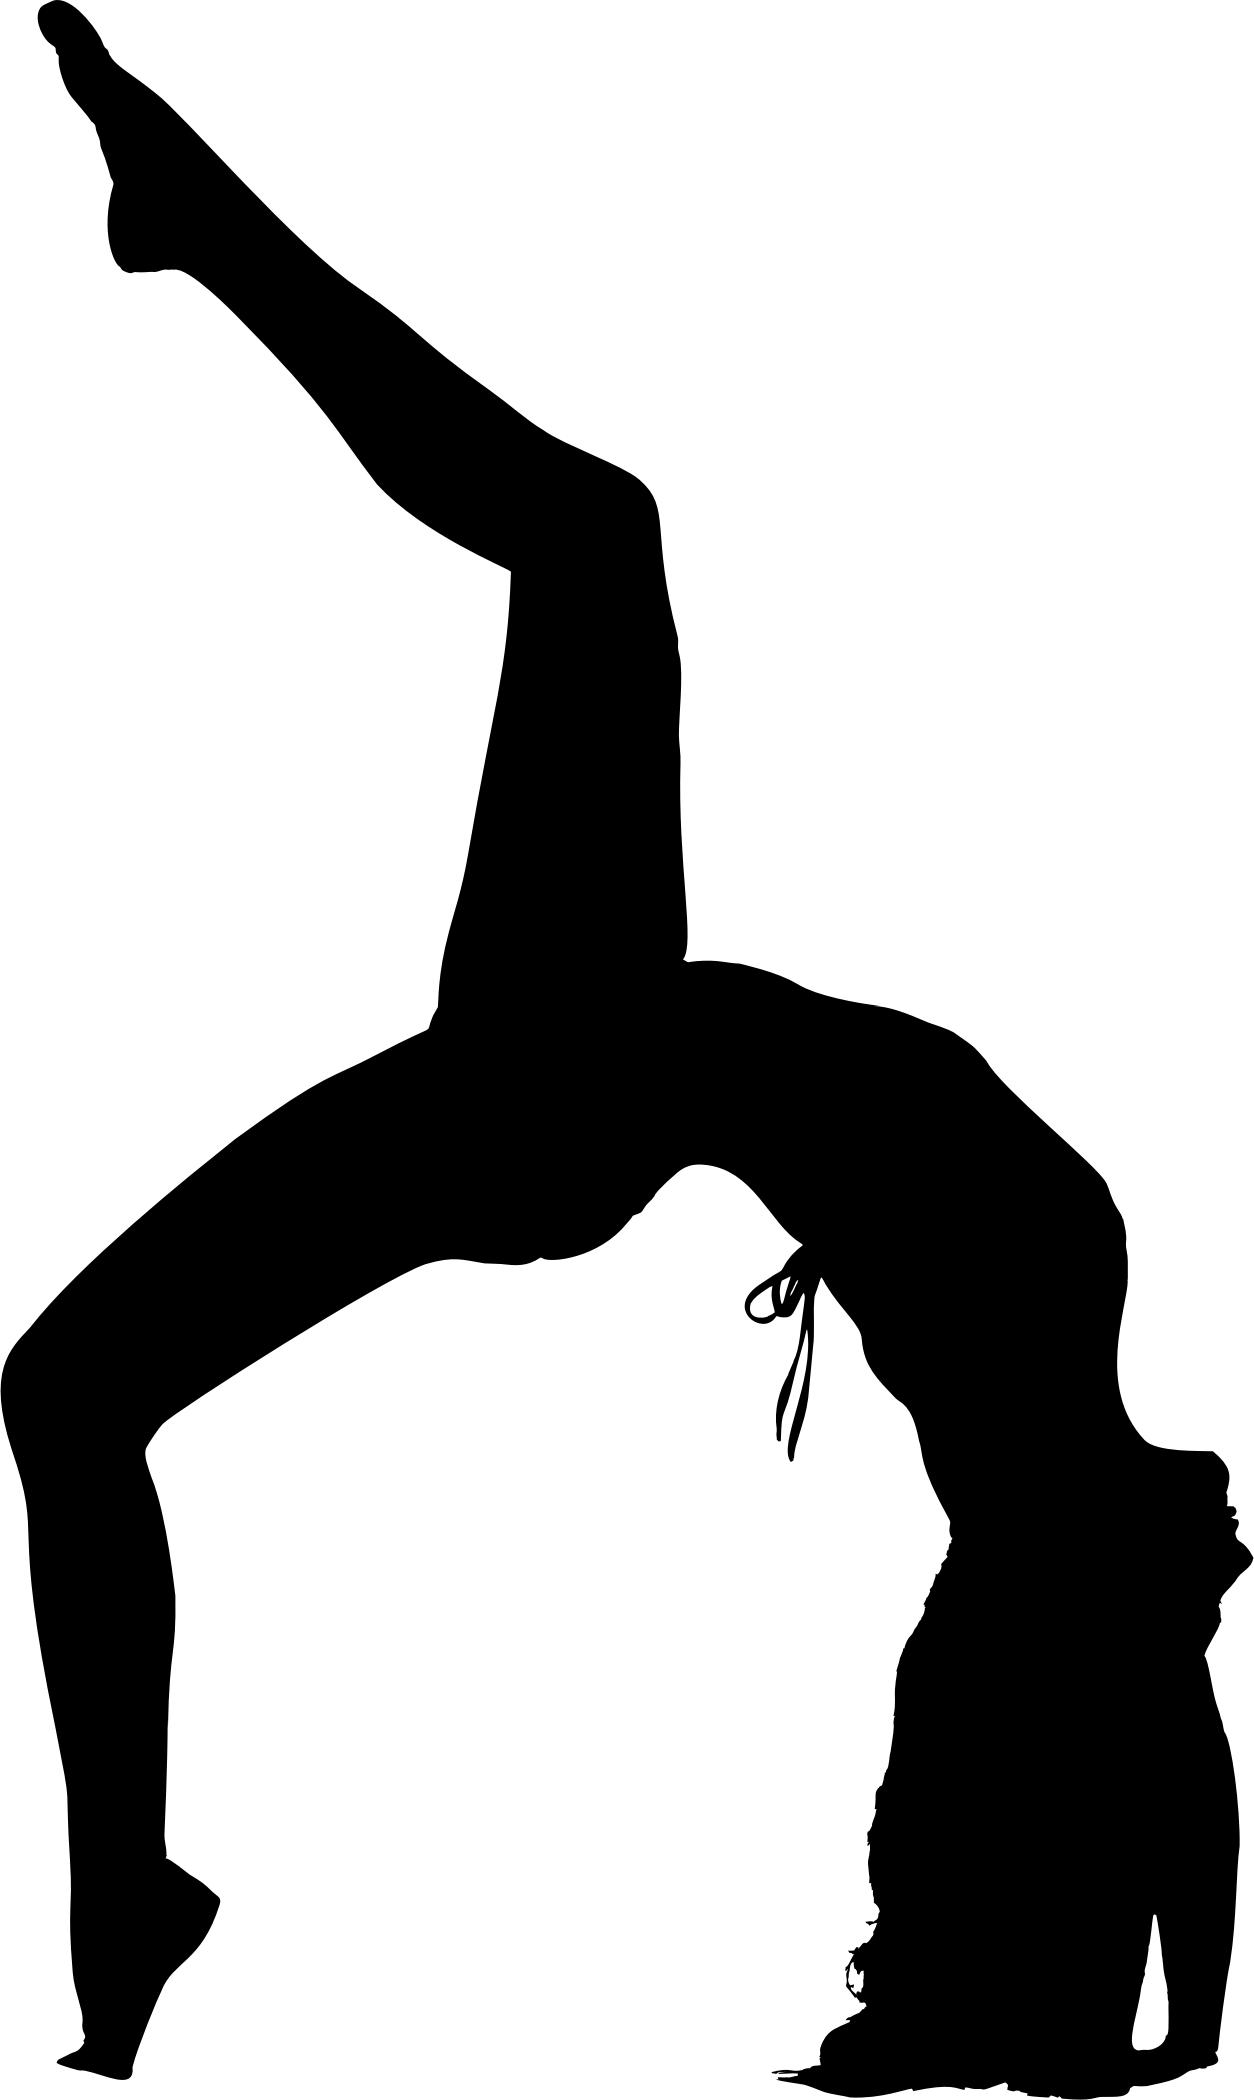 1254x2100 Female Yoga Pose Silhouette 10 Icons Png